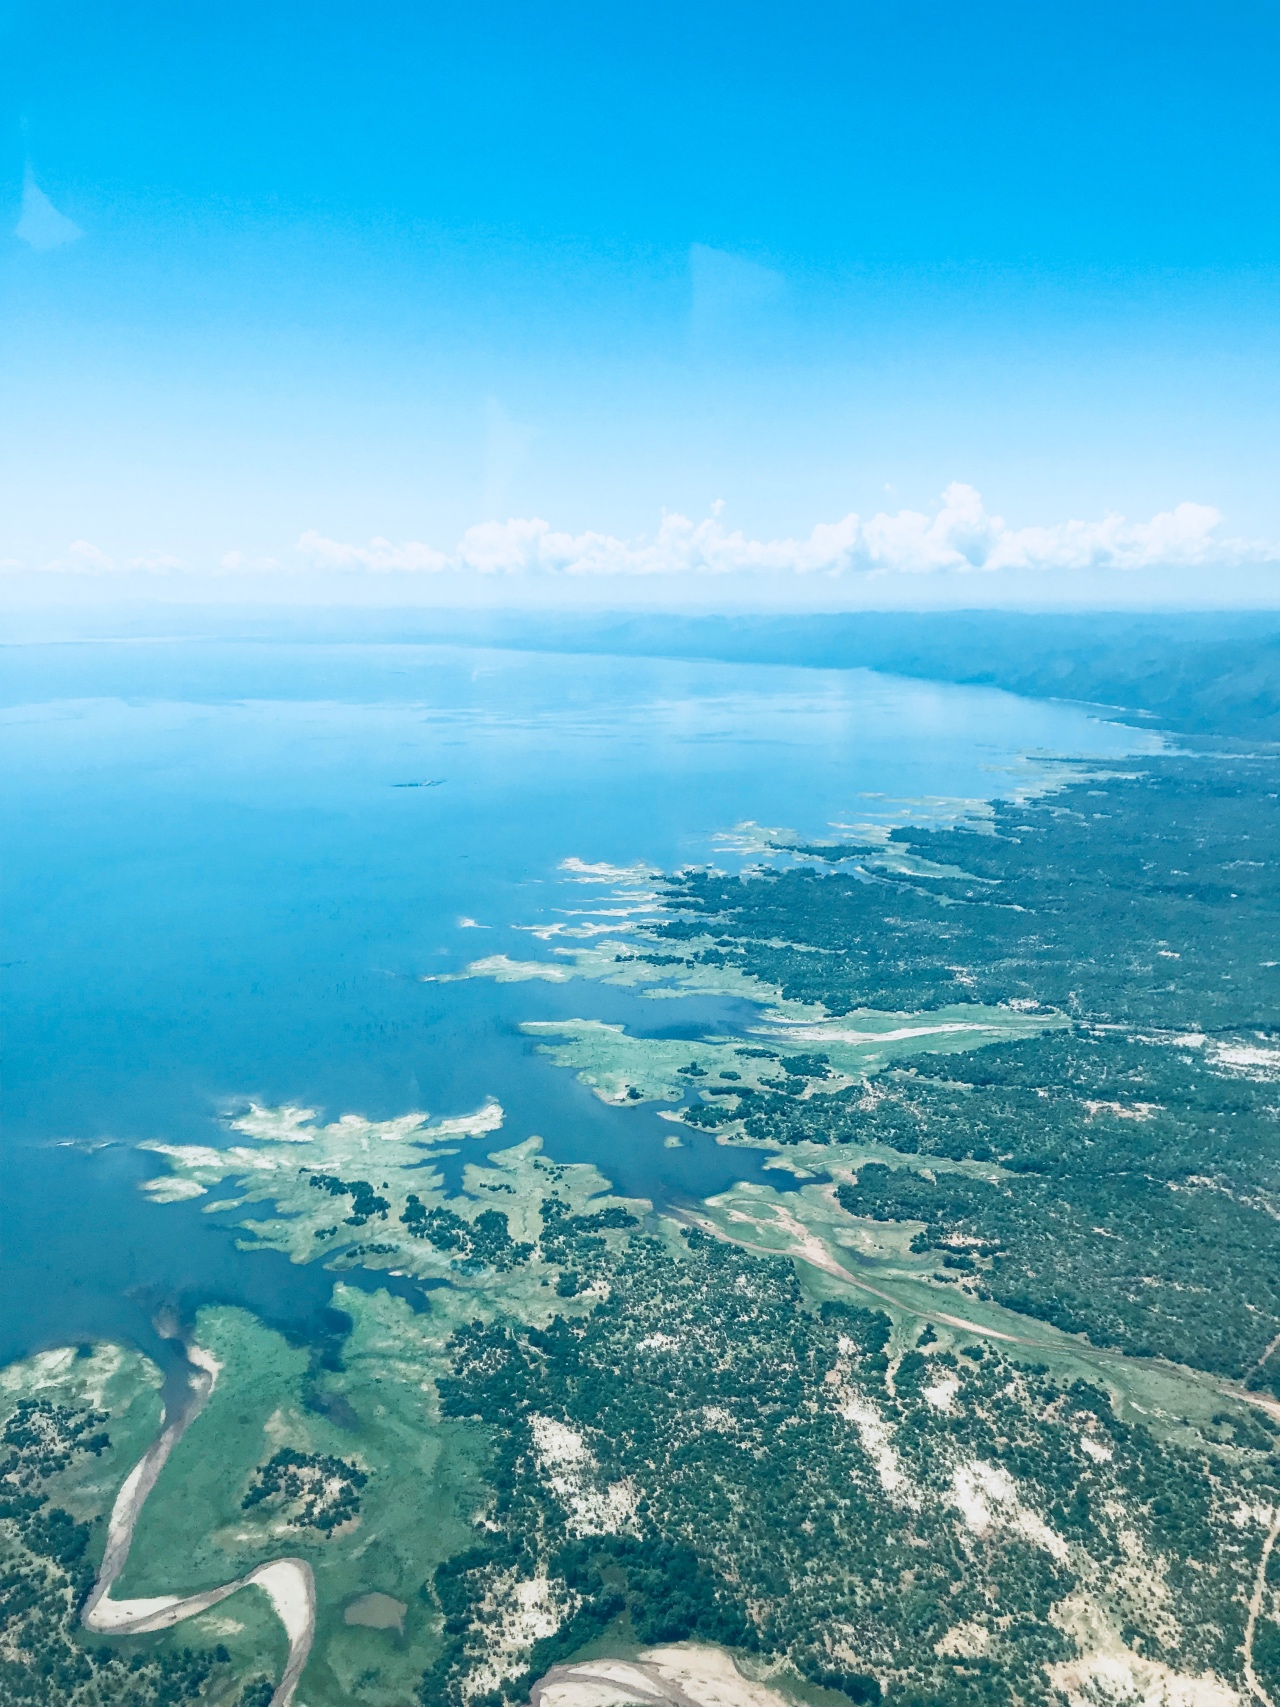 Lake Kariba from the air